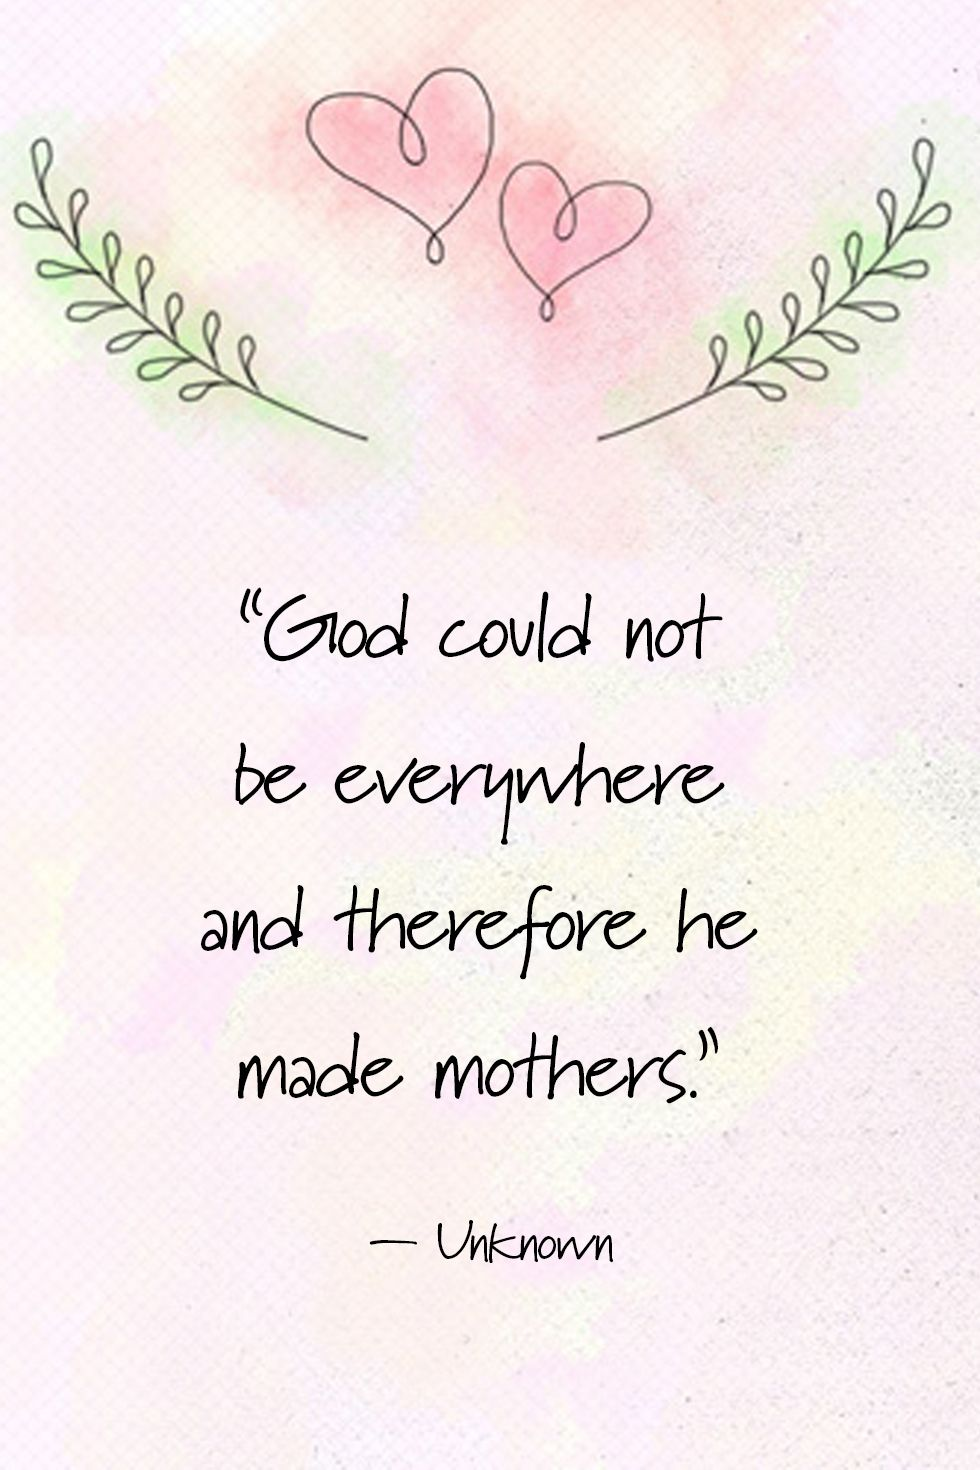 Famous Quotes About Mothers 10 Short Mothers Day Quotes & Poems  Meaningful Happy Mother's